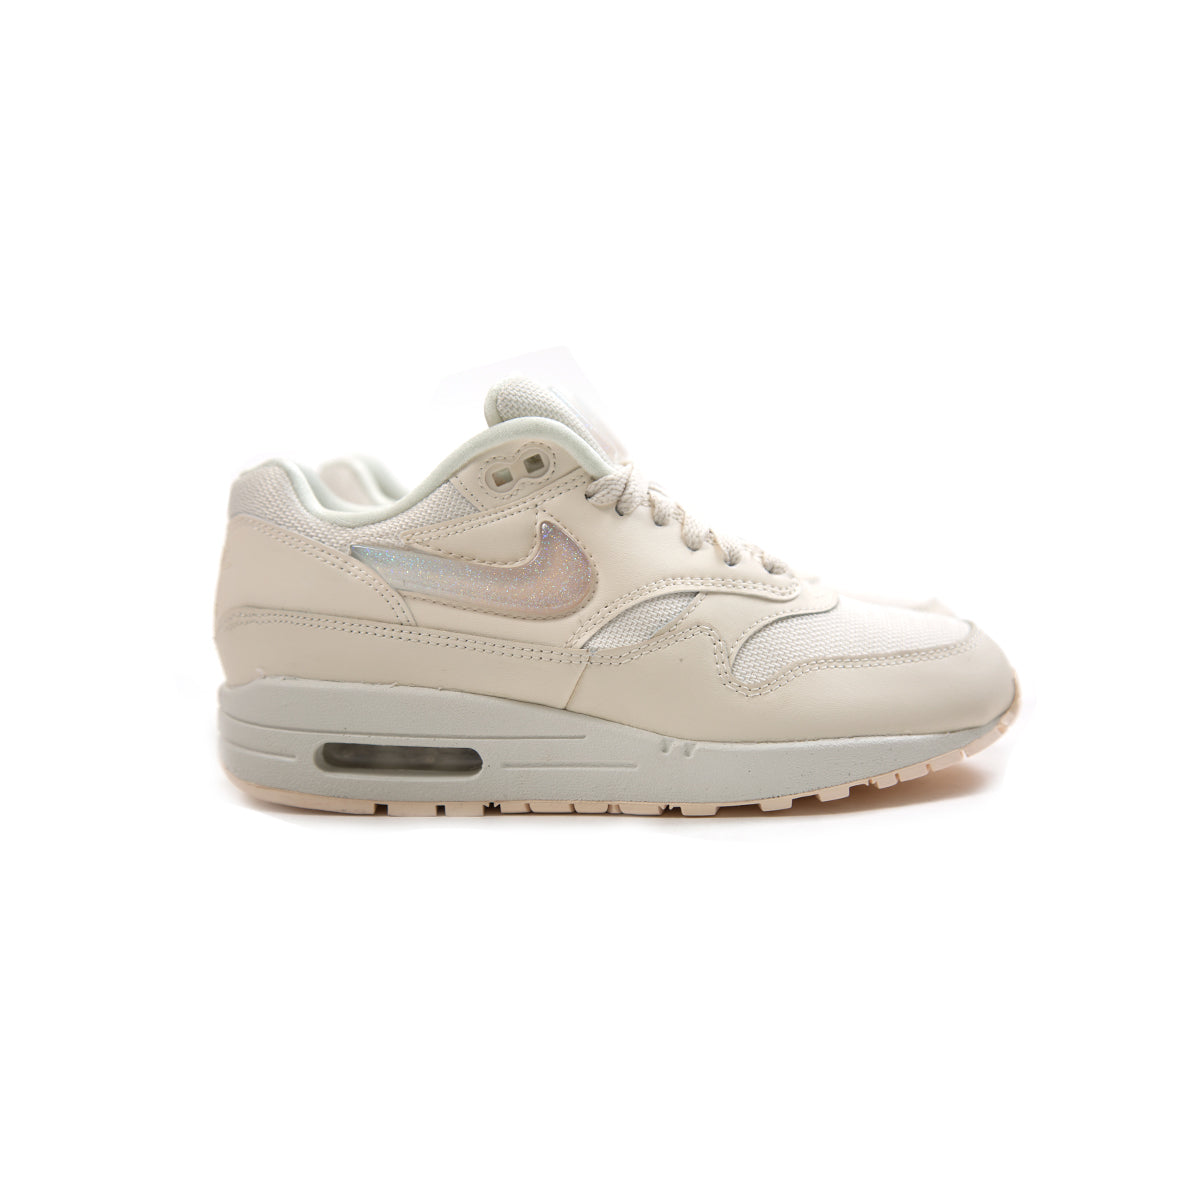 Nike Air Max 1 JP (Pale Ivory Summit White-Guava Ice) AT5248-100 823f4c8ca